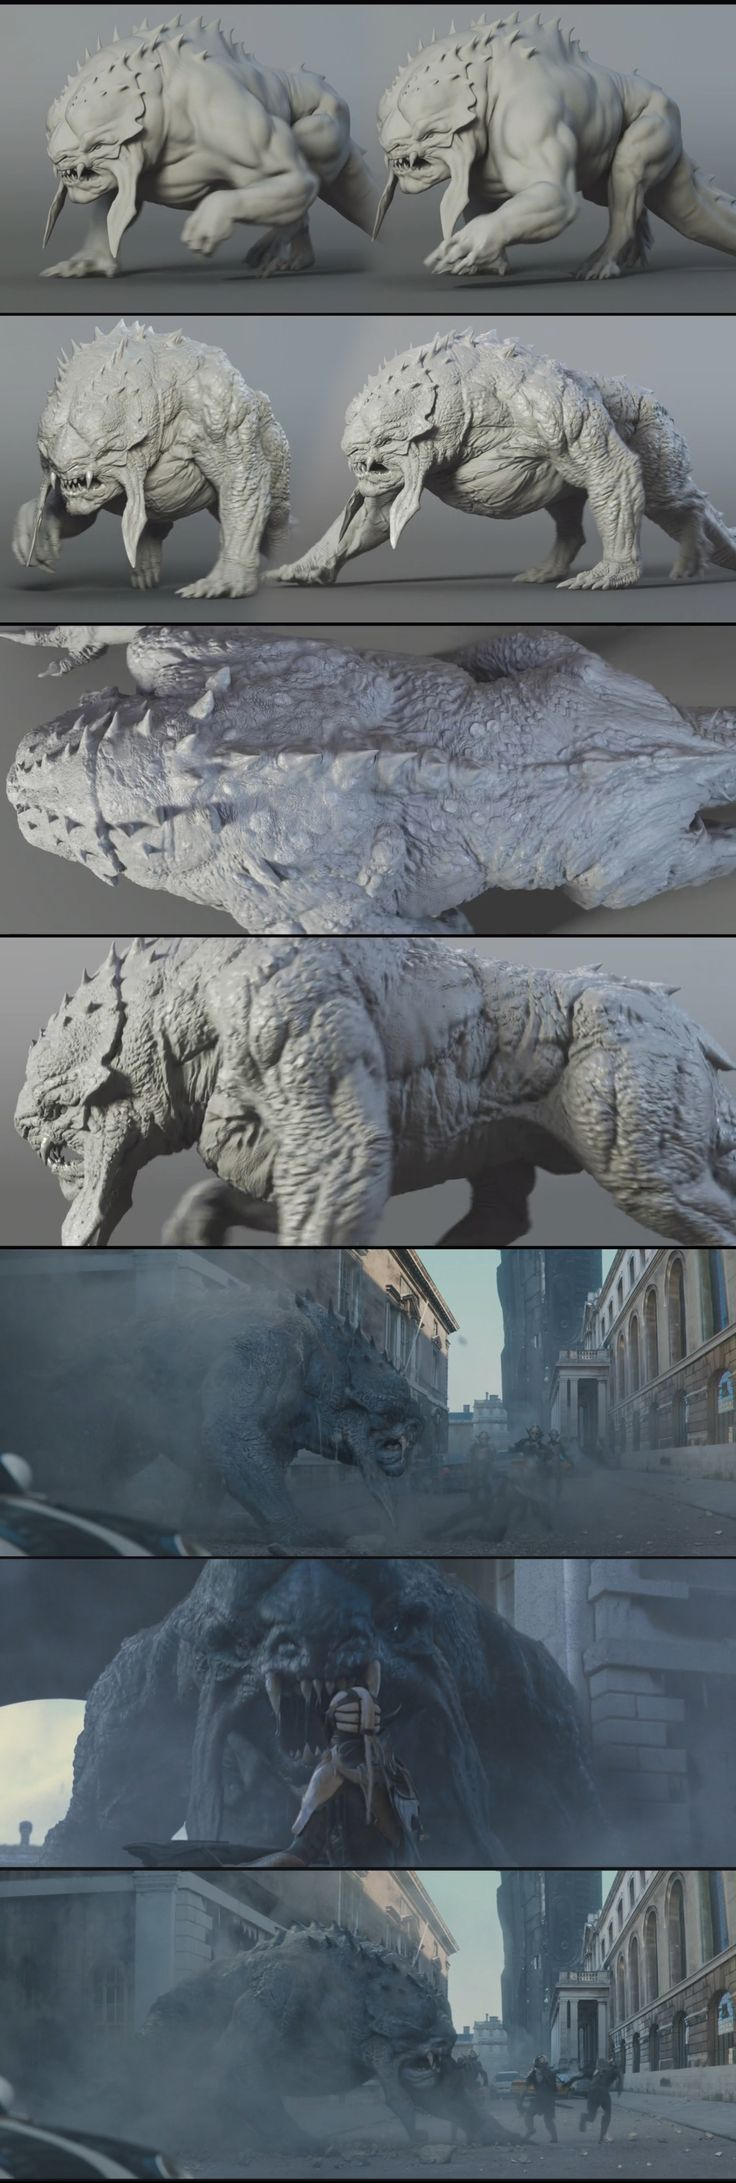 ArtStation - Luma Pictures, safari sosebee